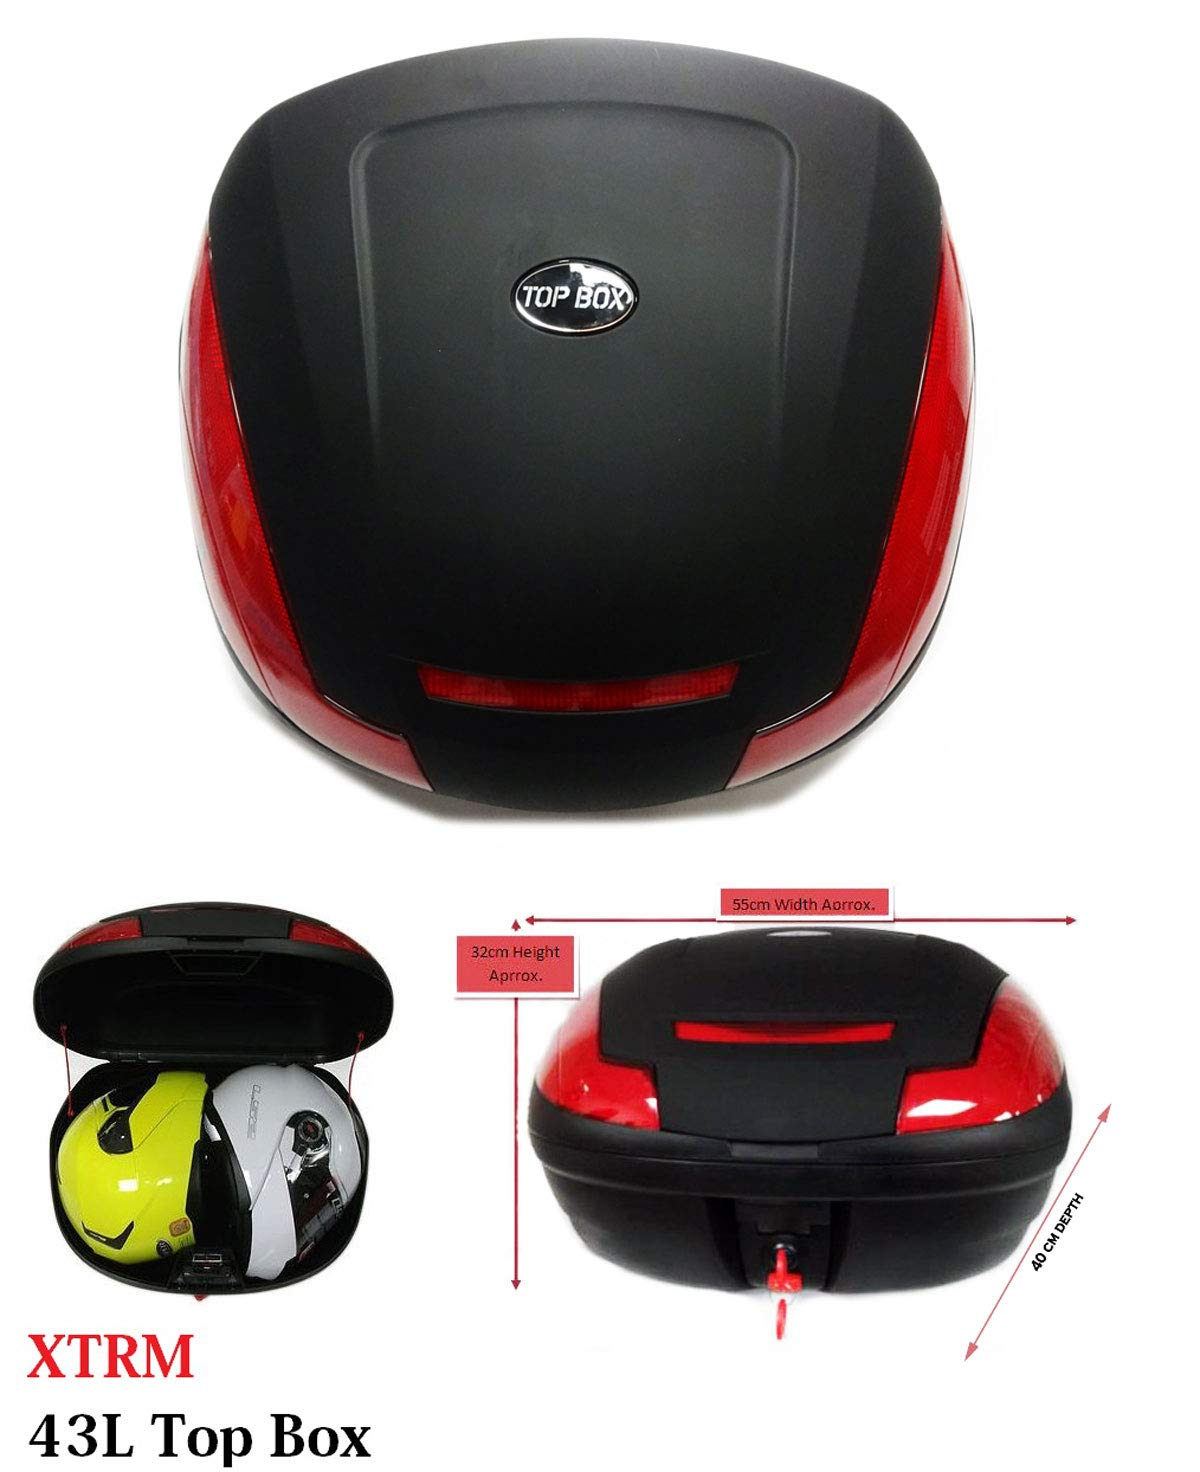 MOTORBIKE LUGGAGE TOP BOX 52 LITRE Motorcycle Scooter Universal Rear Back Fit Top Box Case